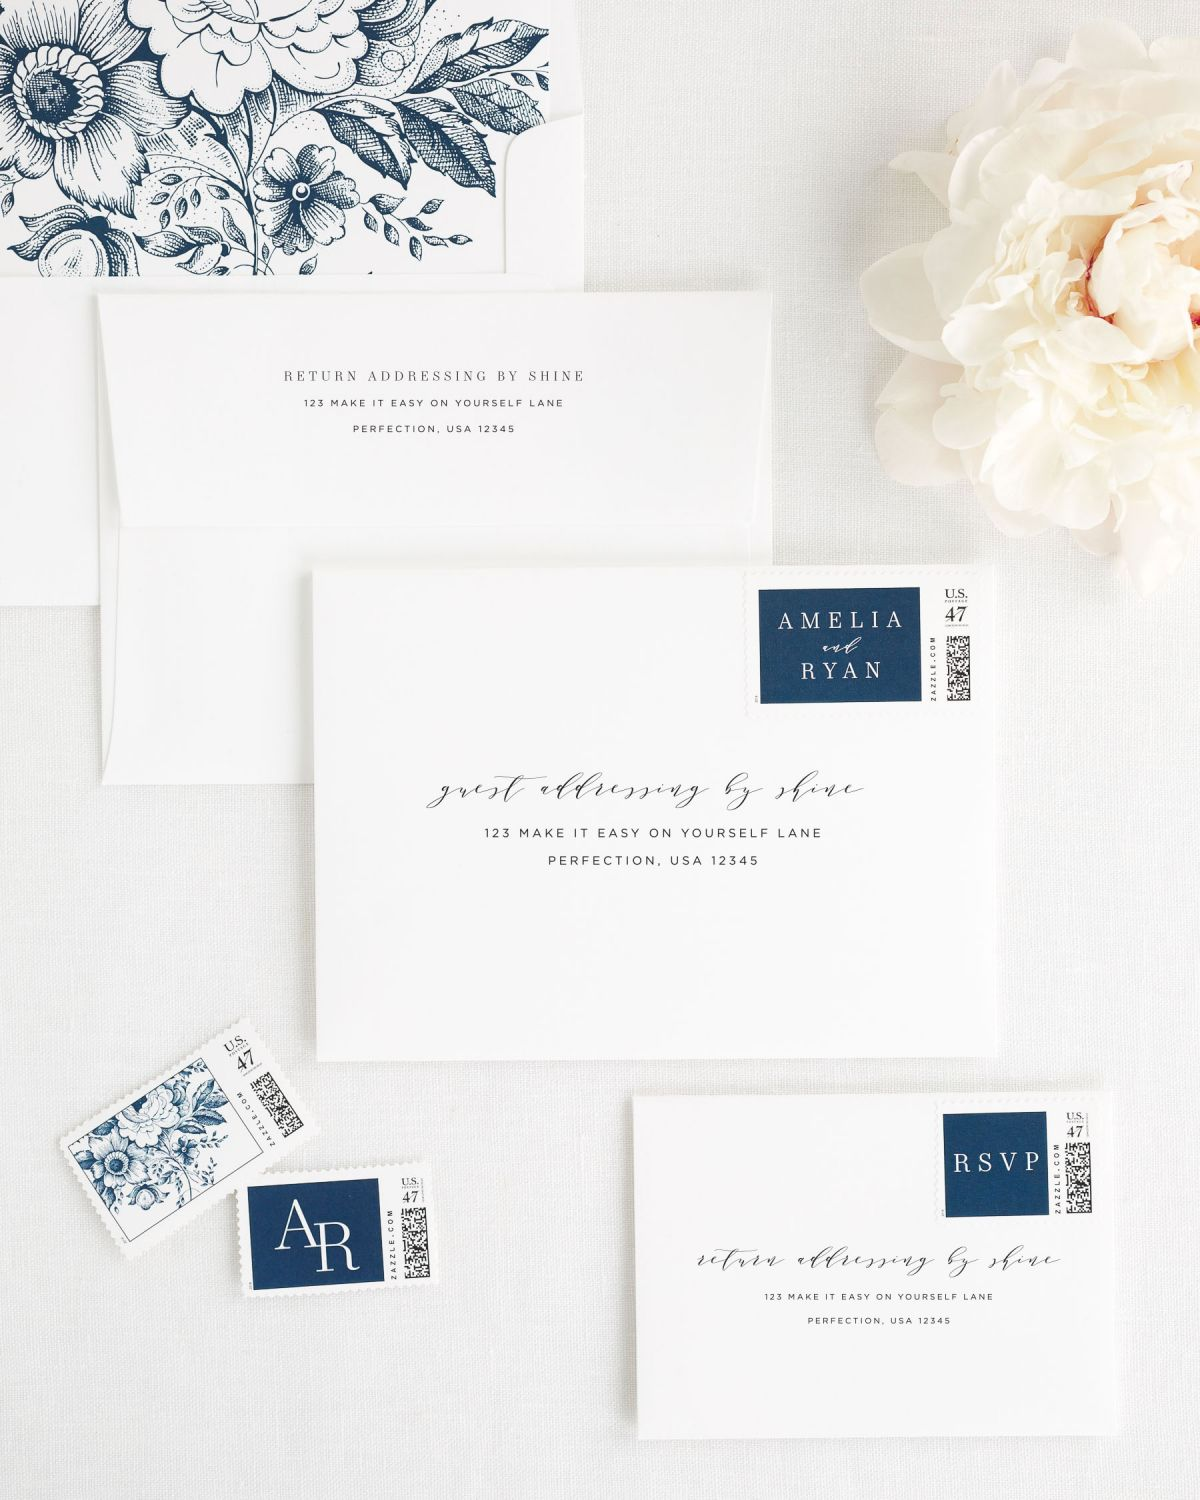 ... Invitation Envelopes With Guest Address Printing, Custom Postage  Stamps, And An Envelope Liner In Wedding Invitation Components